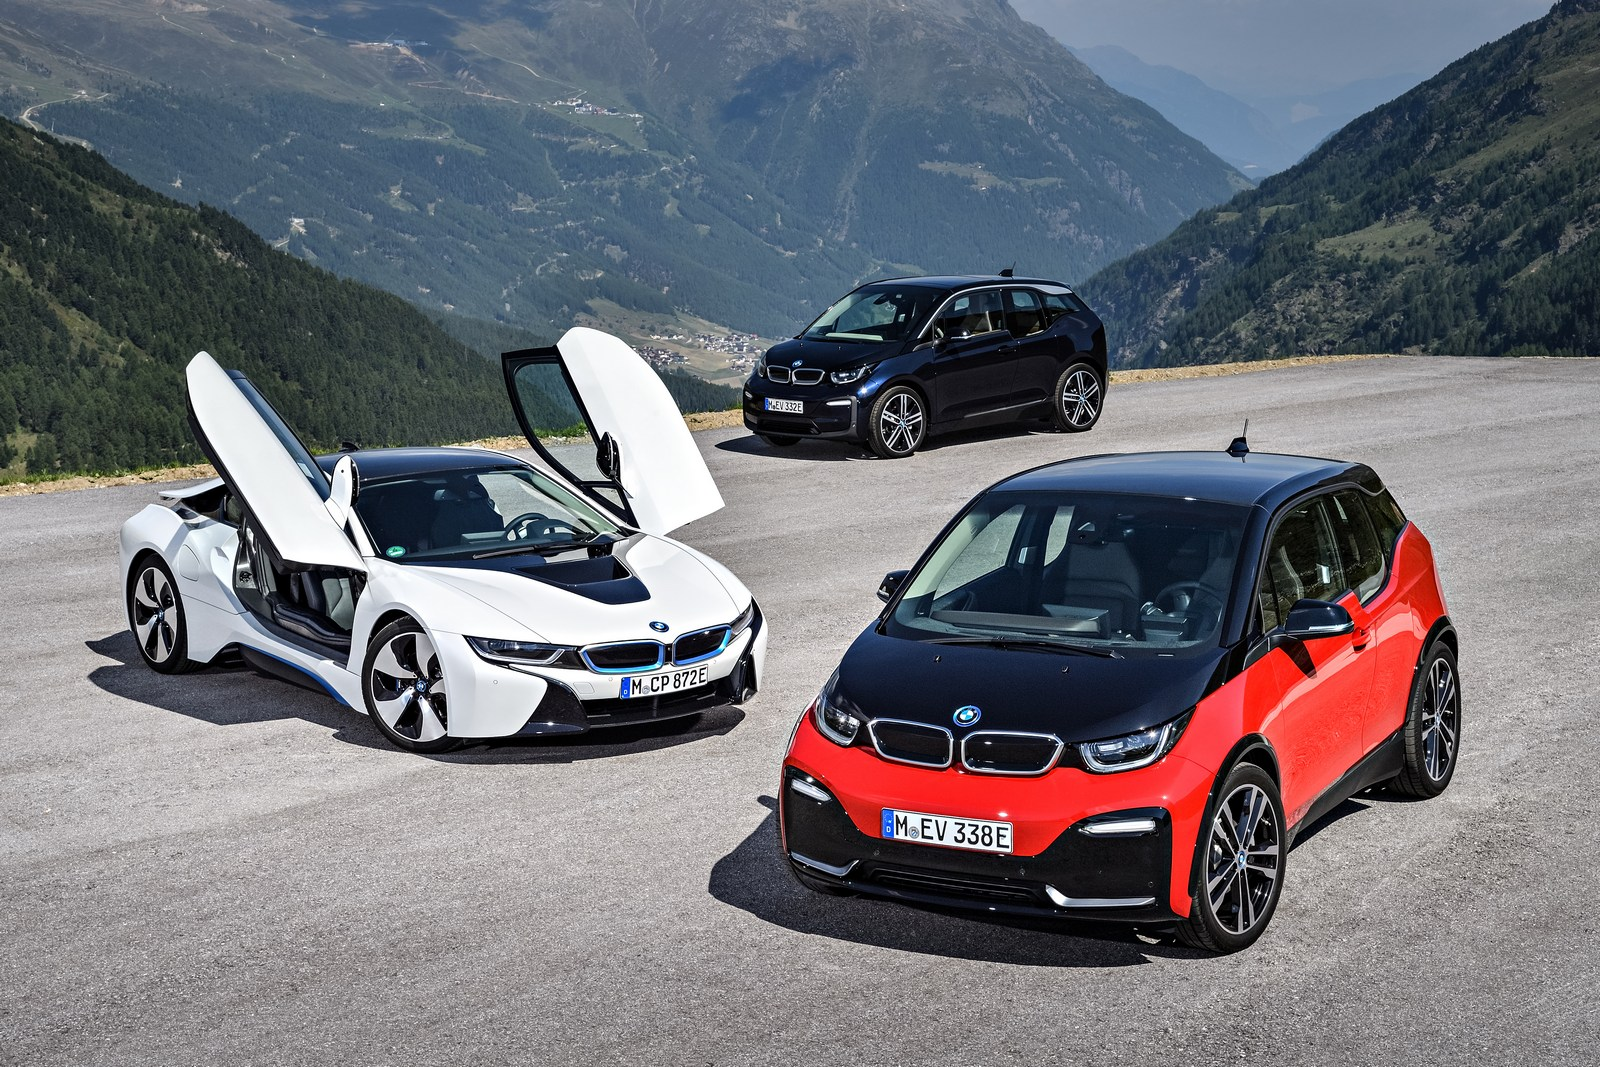 2018 bmw i3s debuts with upgraded motor sportier styling carscoops. Black Bedroom Furniture Sets. Home Design Ideas